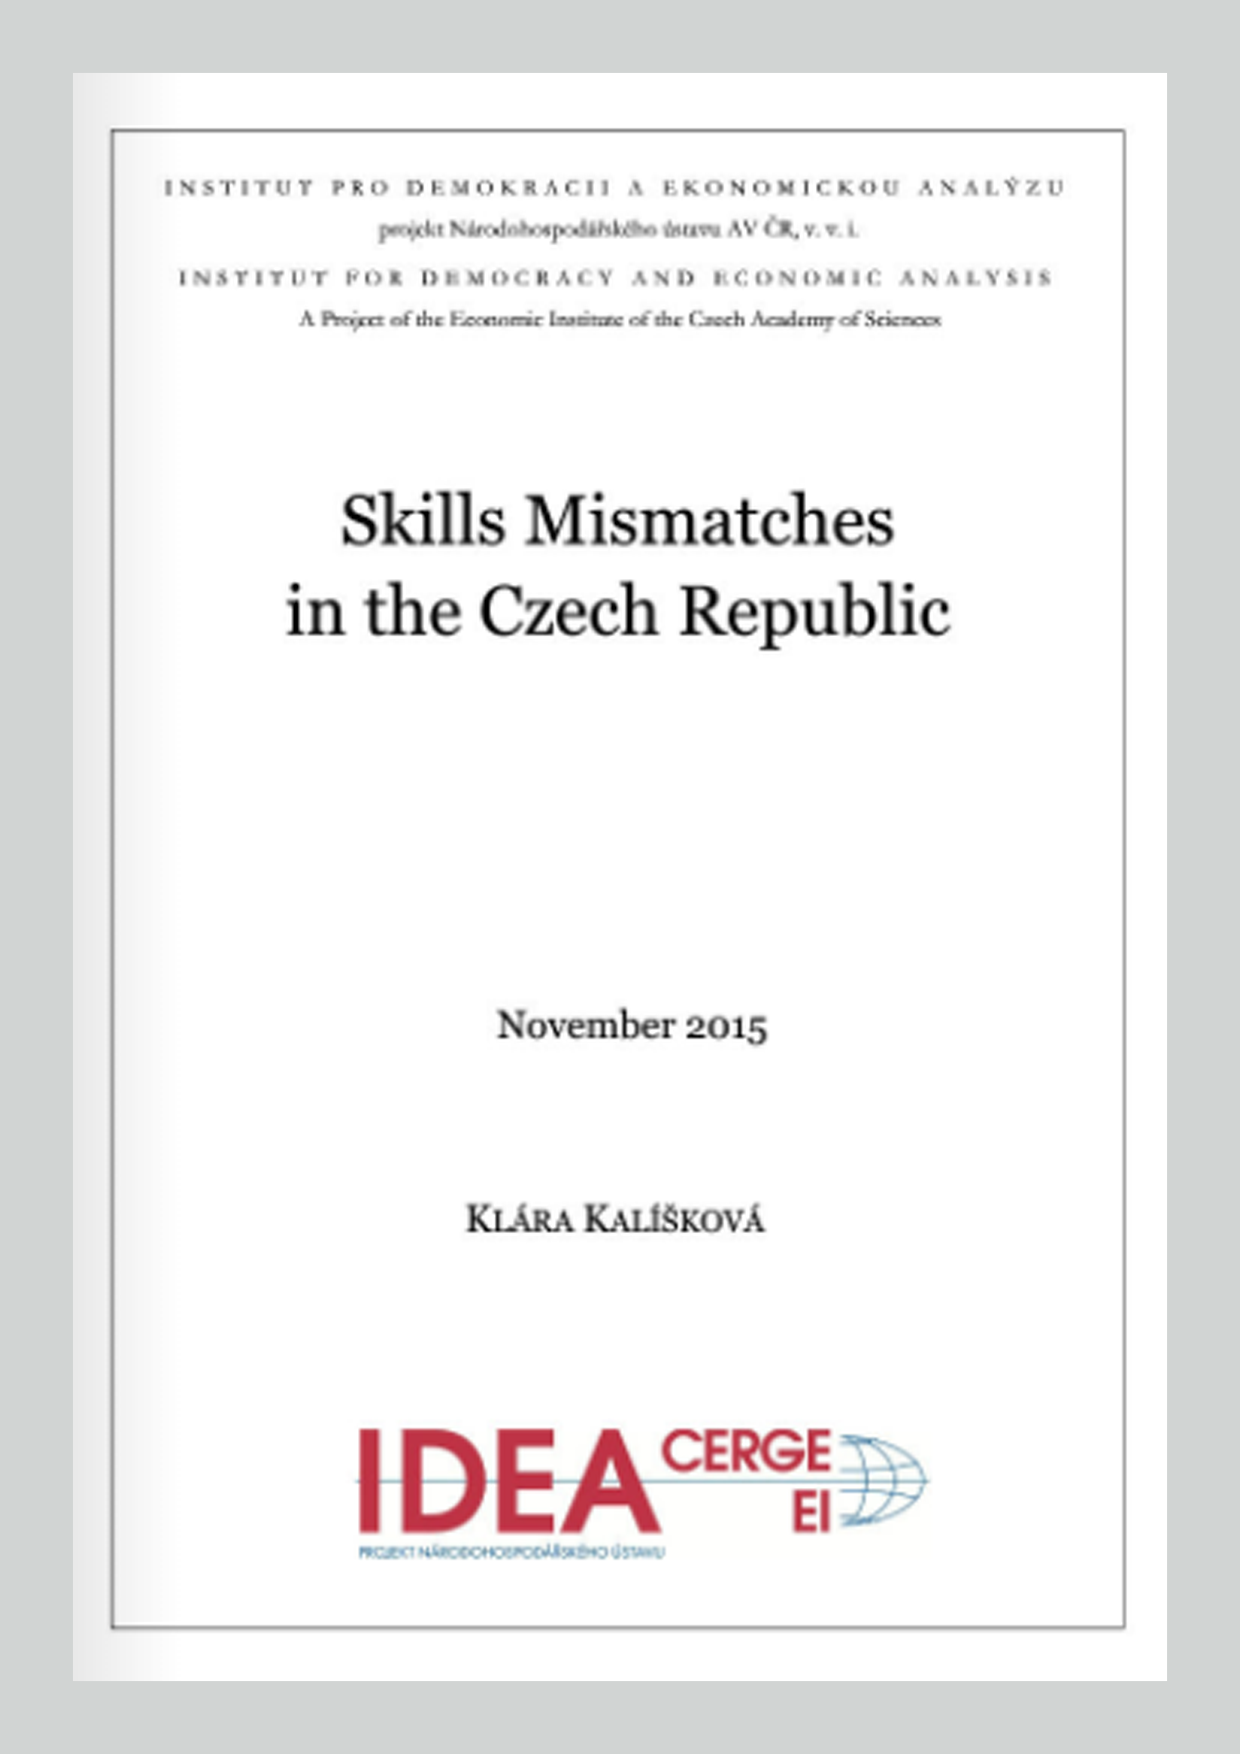 Skills Mismatches in the Czech Republic